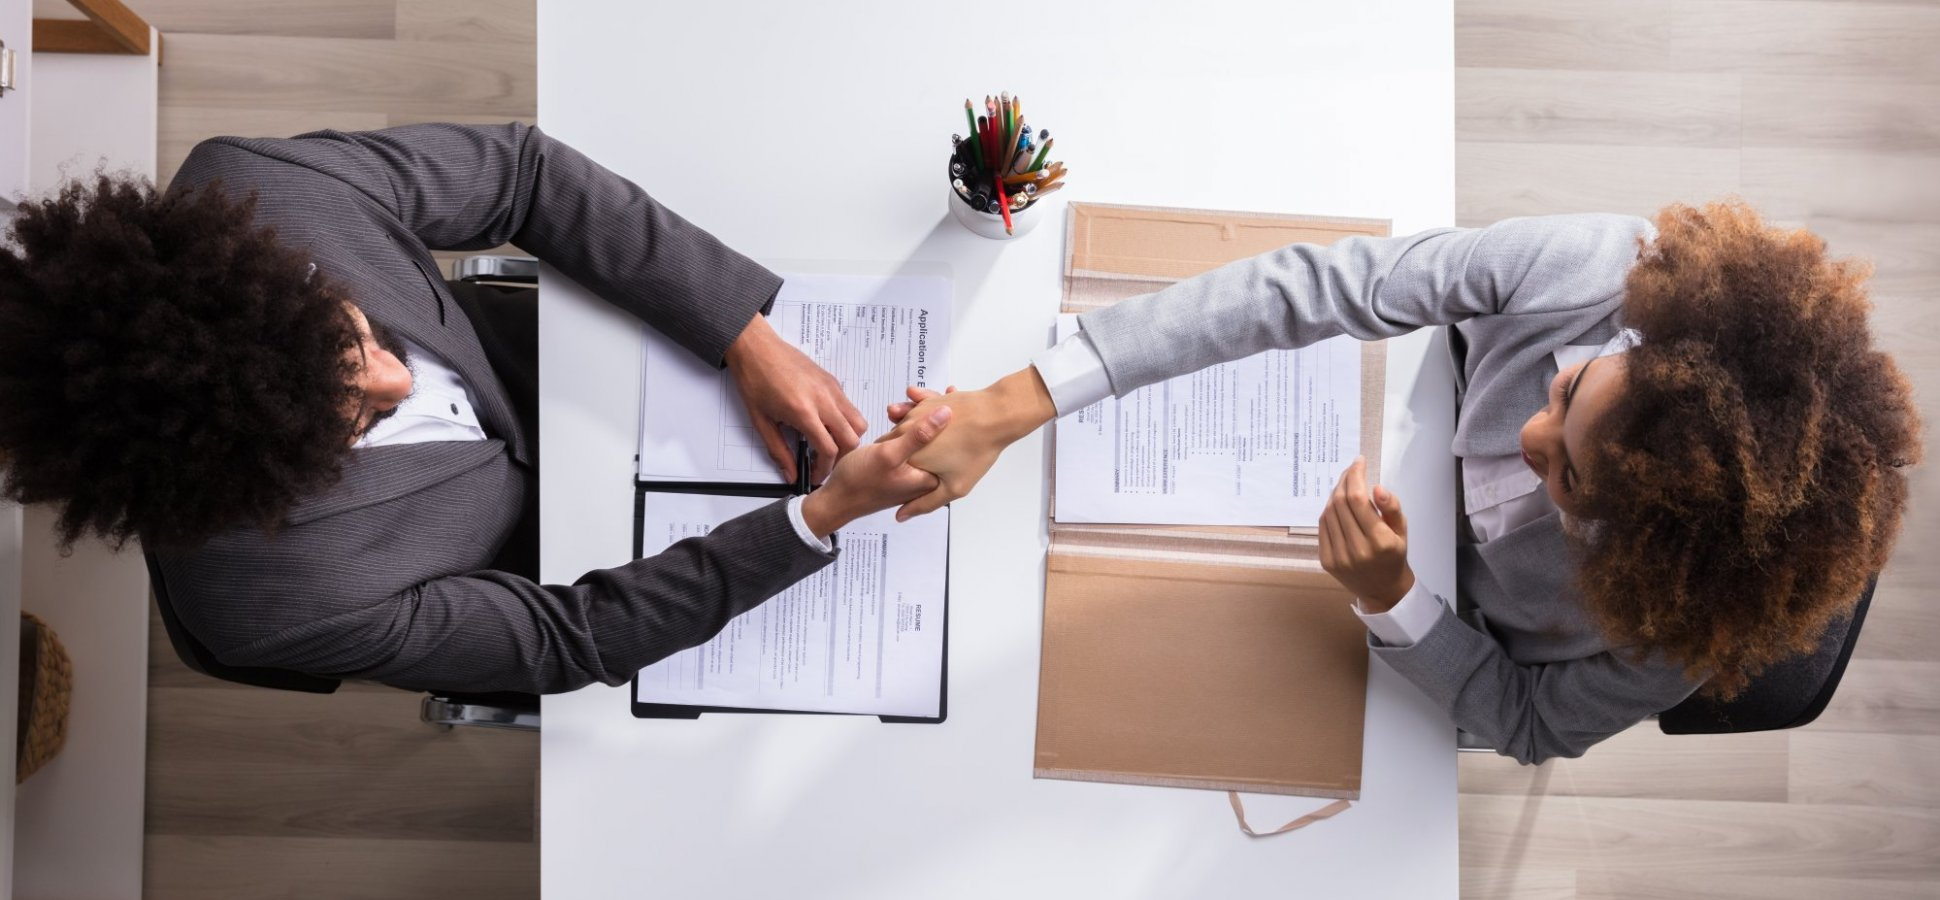 3 Questions to Ask to Find the Most Qualified Candidate for Your Company